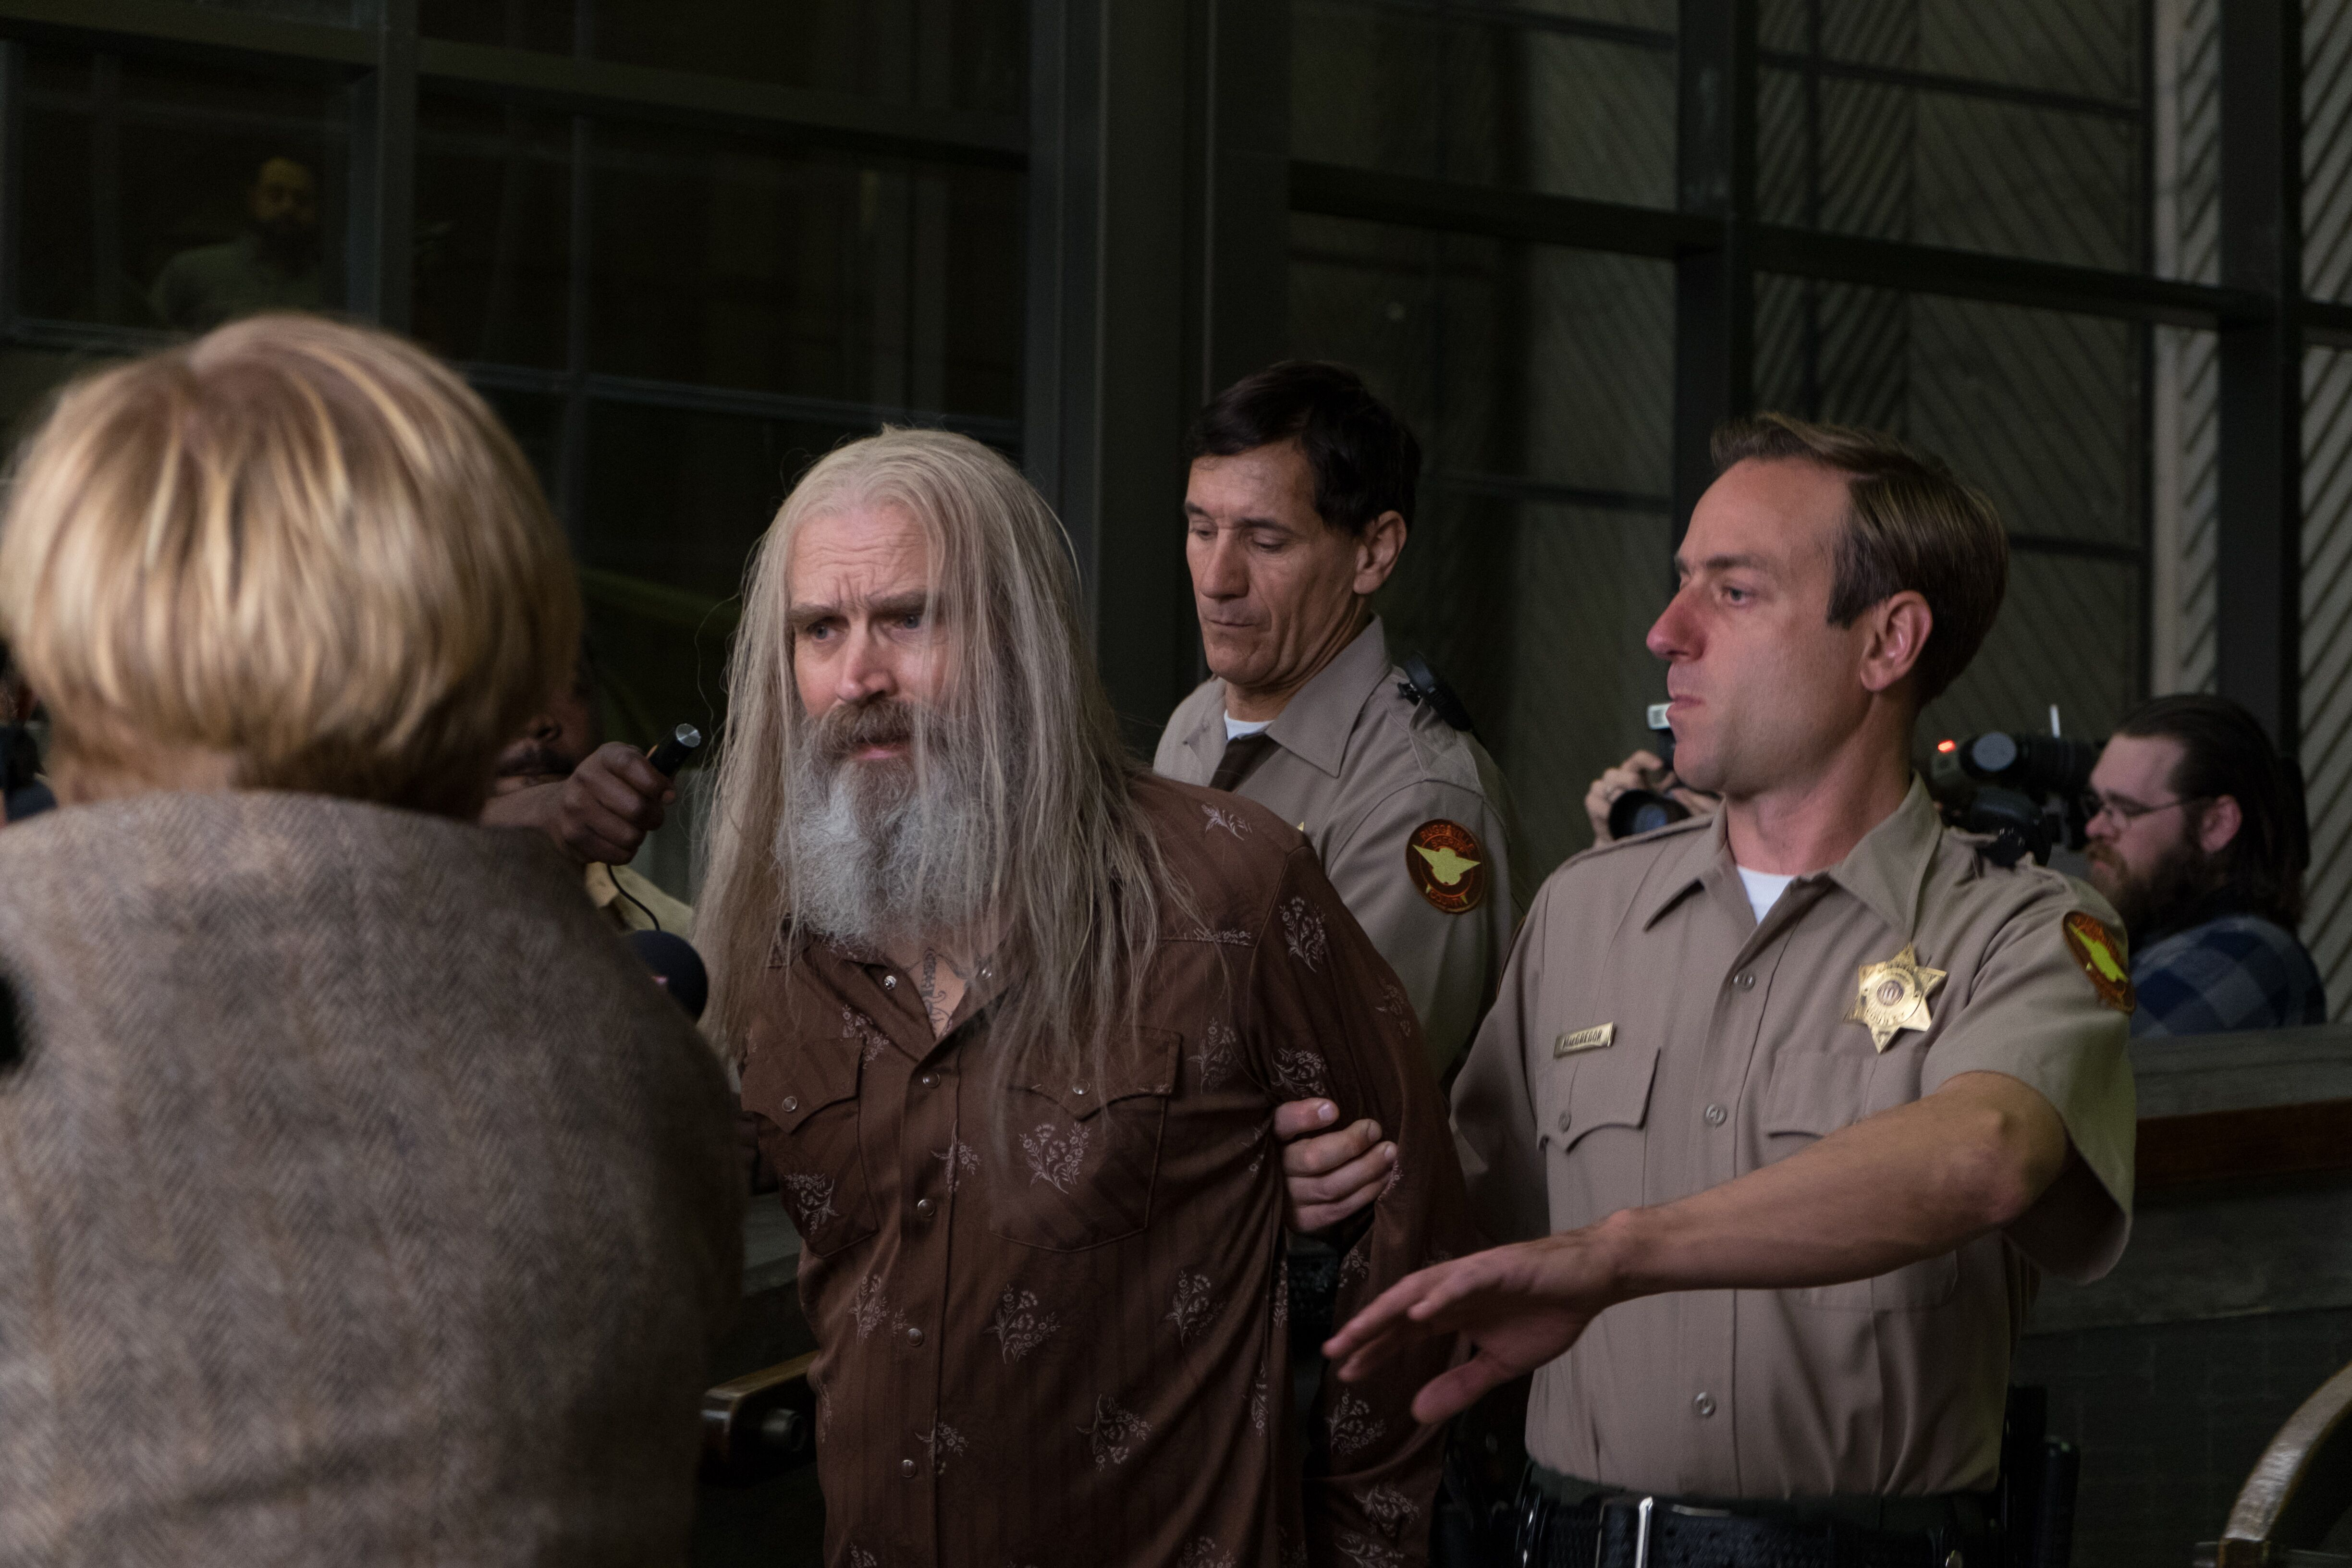 Interview: Actor Bill Moseley for 3 FROM HELL